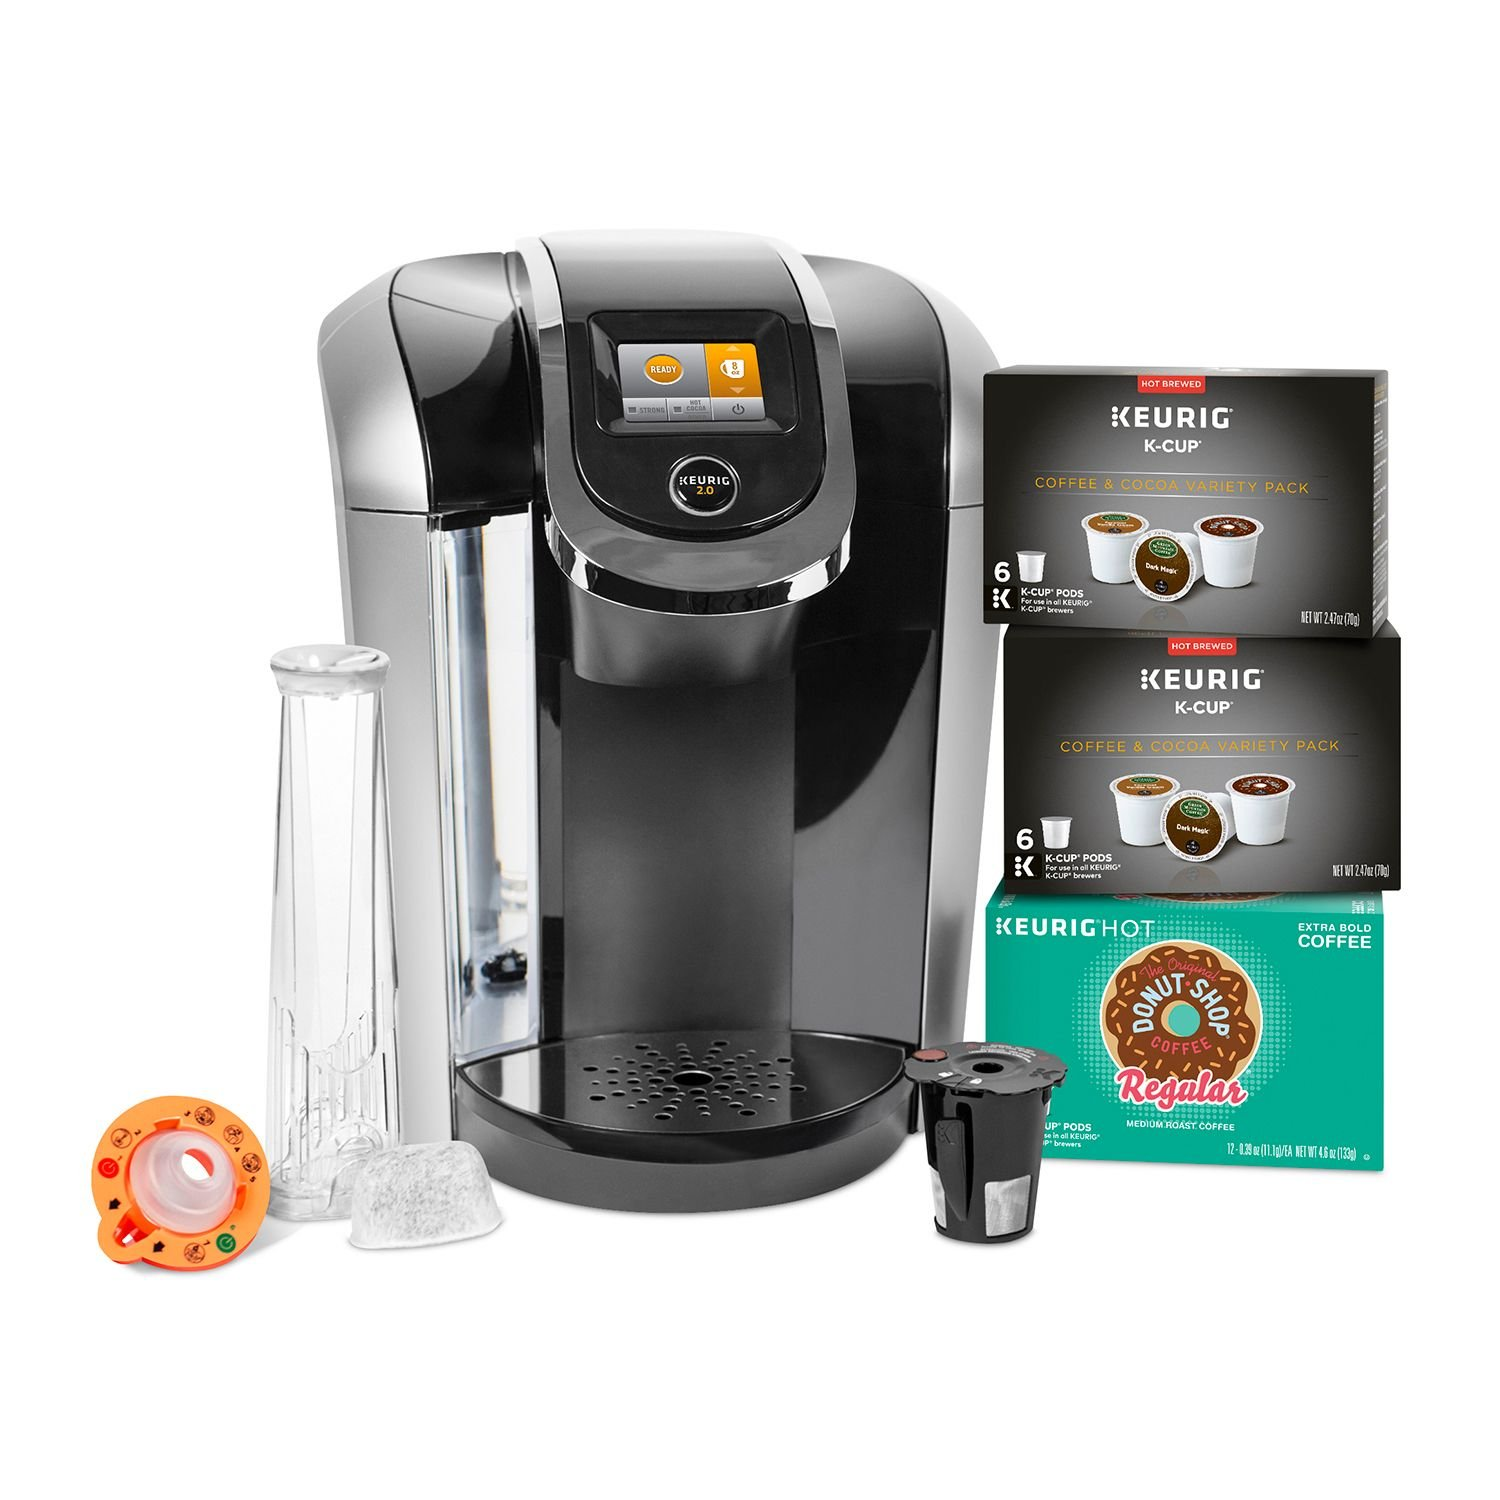 Keurig K425S Coffee Maker with 24 K-Cup Pods and Reusable K-Cup 2.0 Coffee Filter